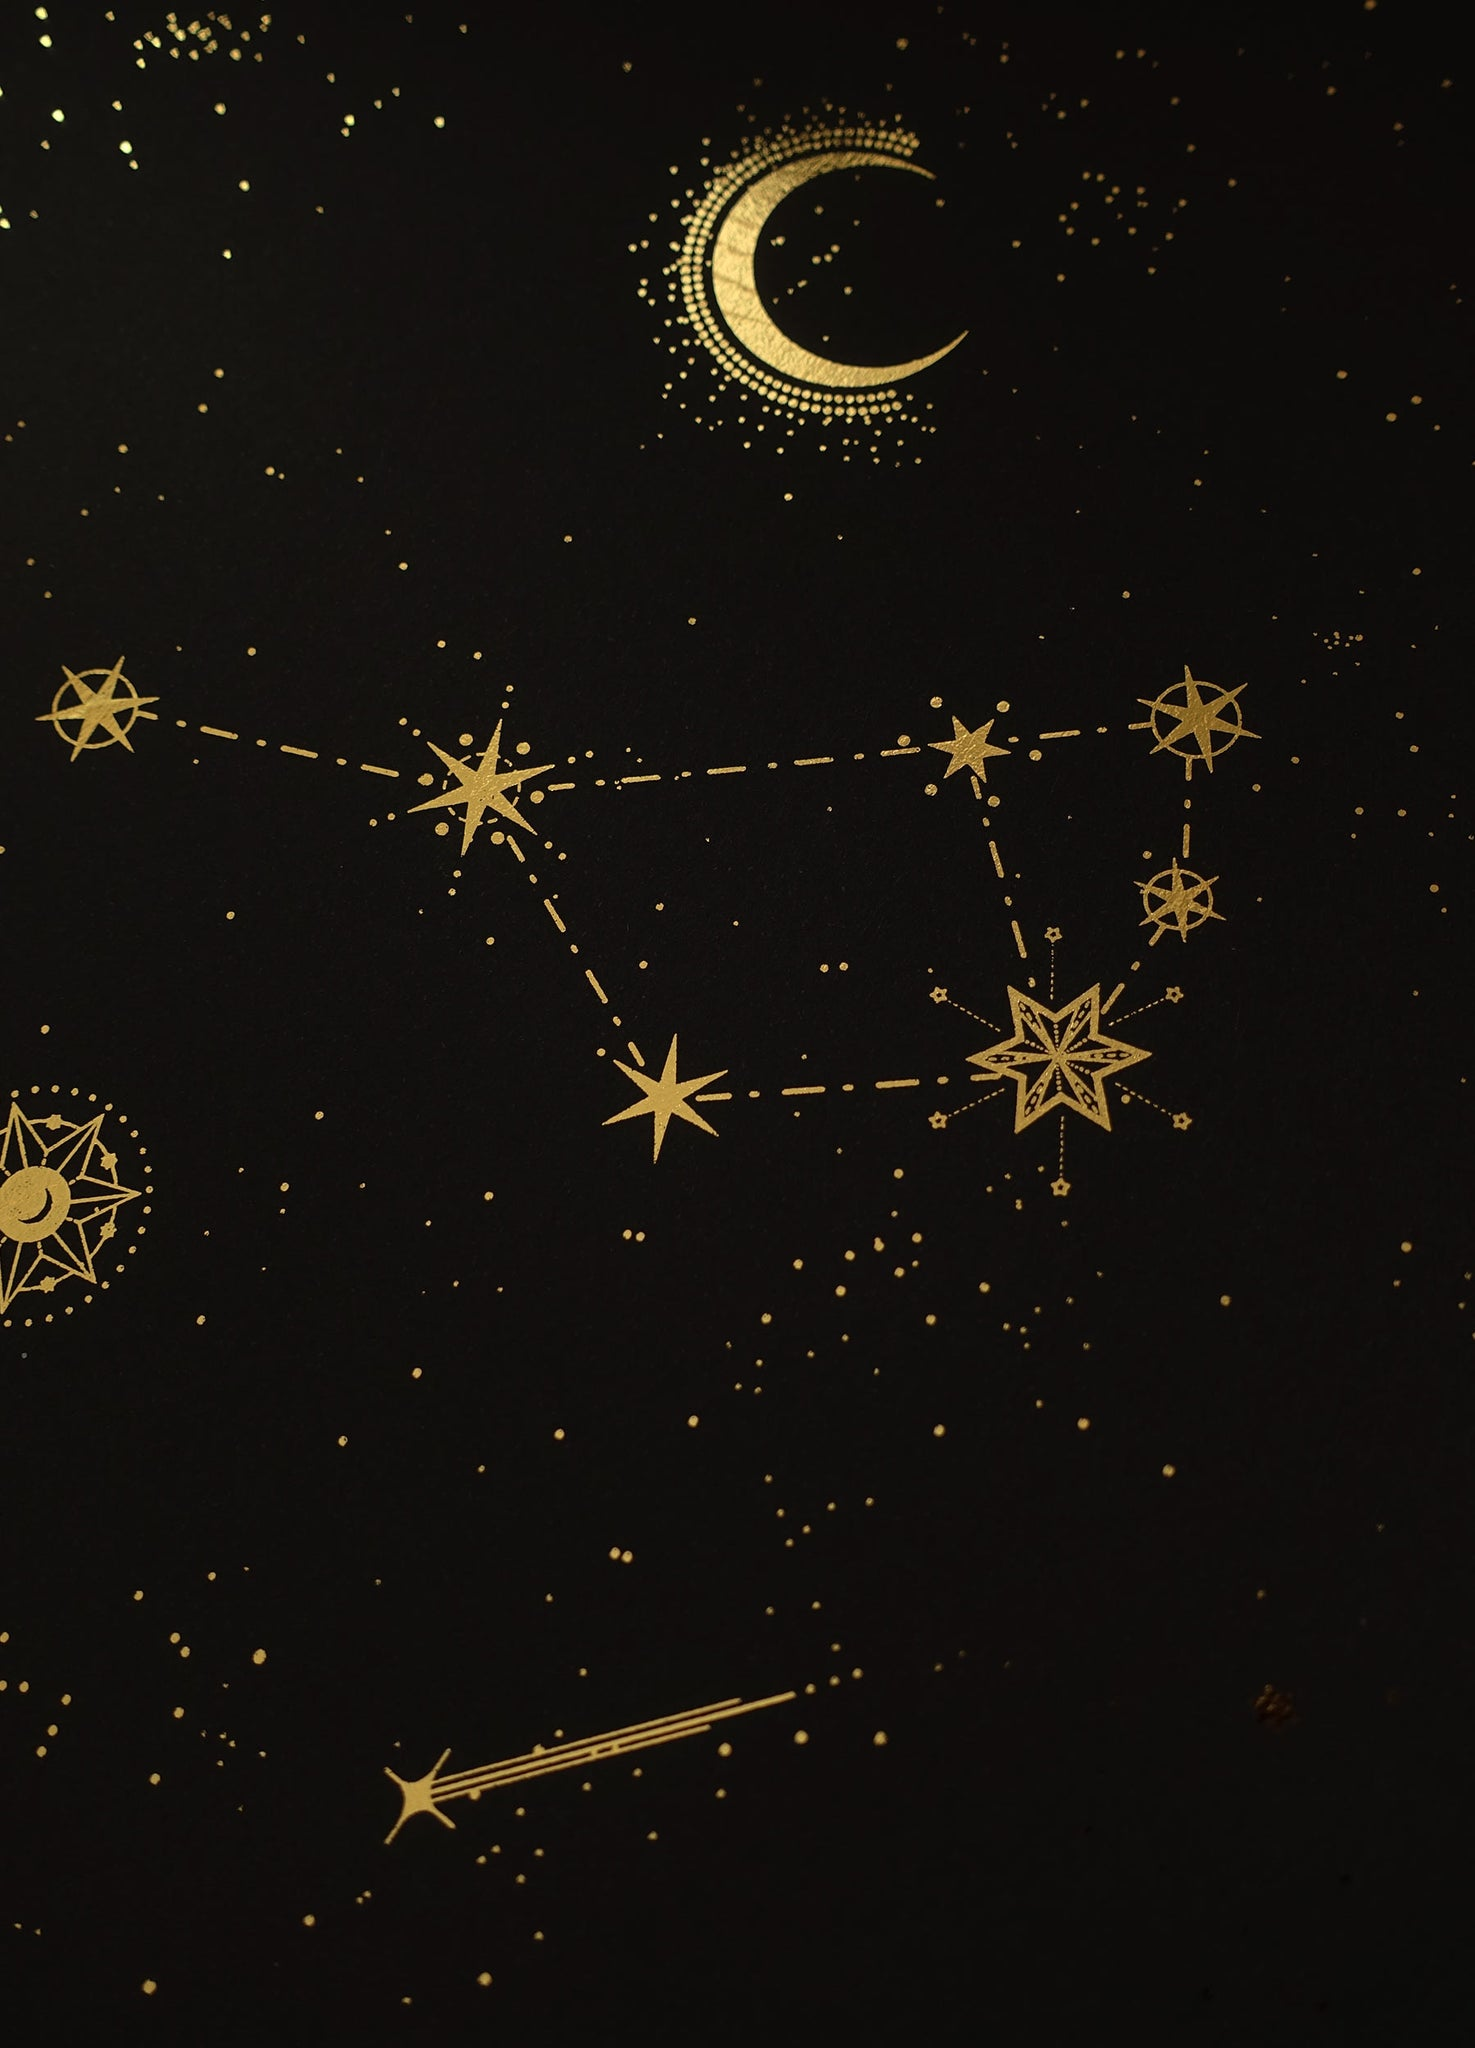 The Pleiades / seven sisters gold foil print by Cocorrina & Co studio